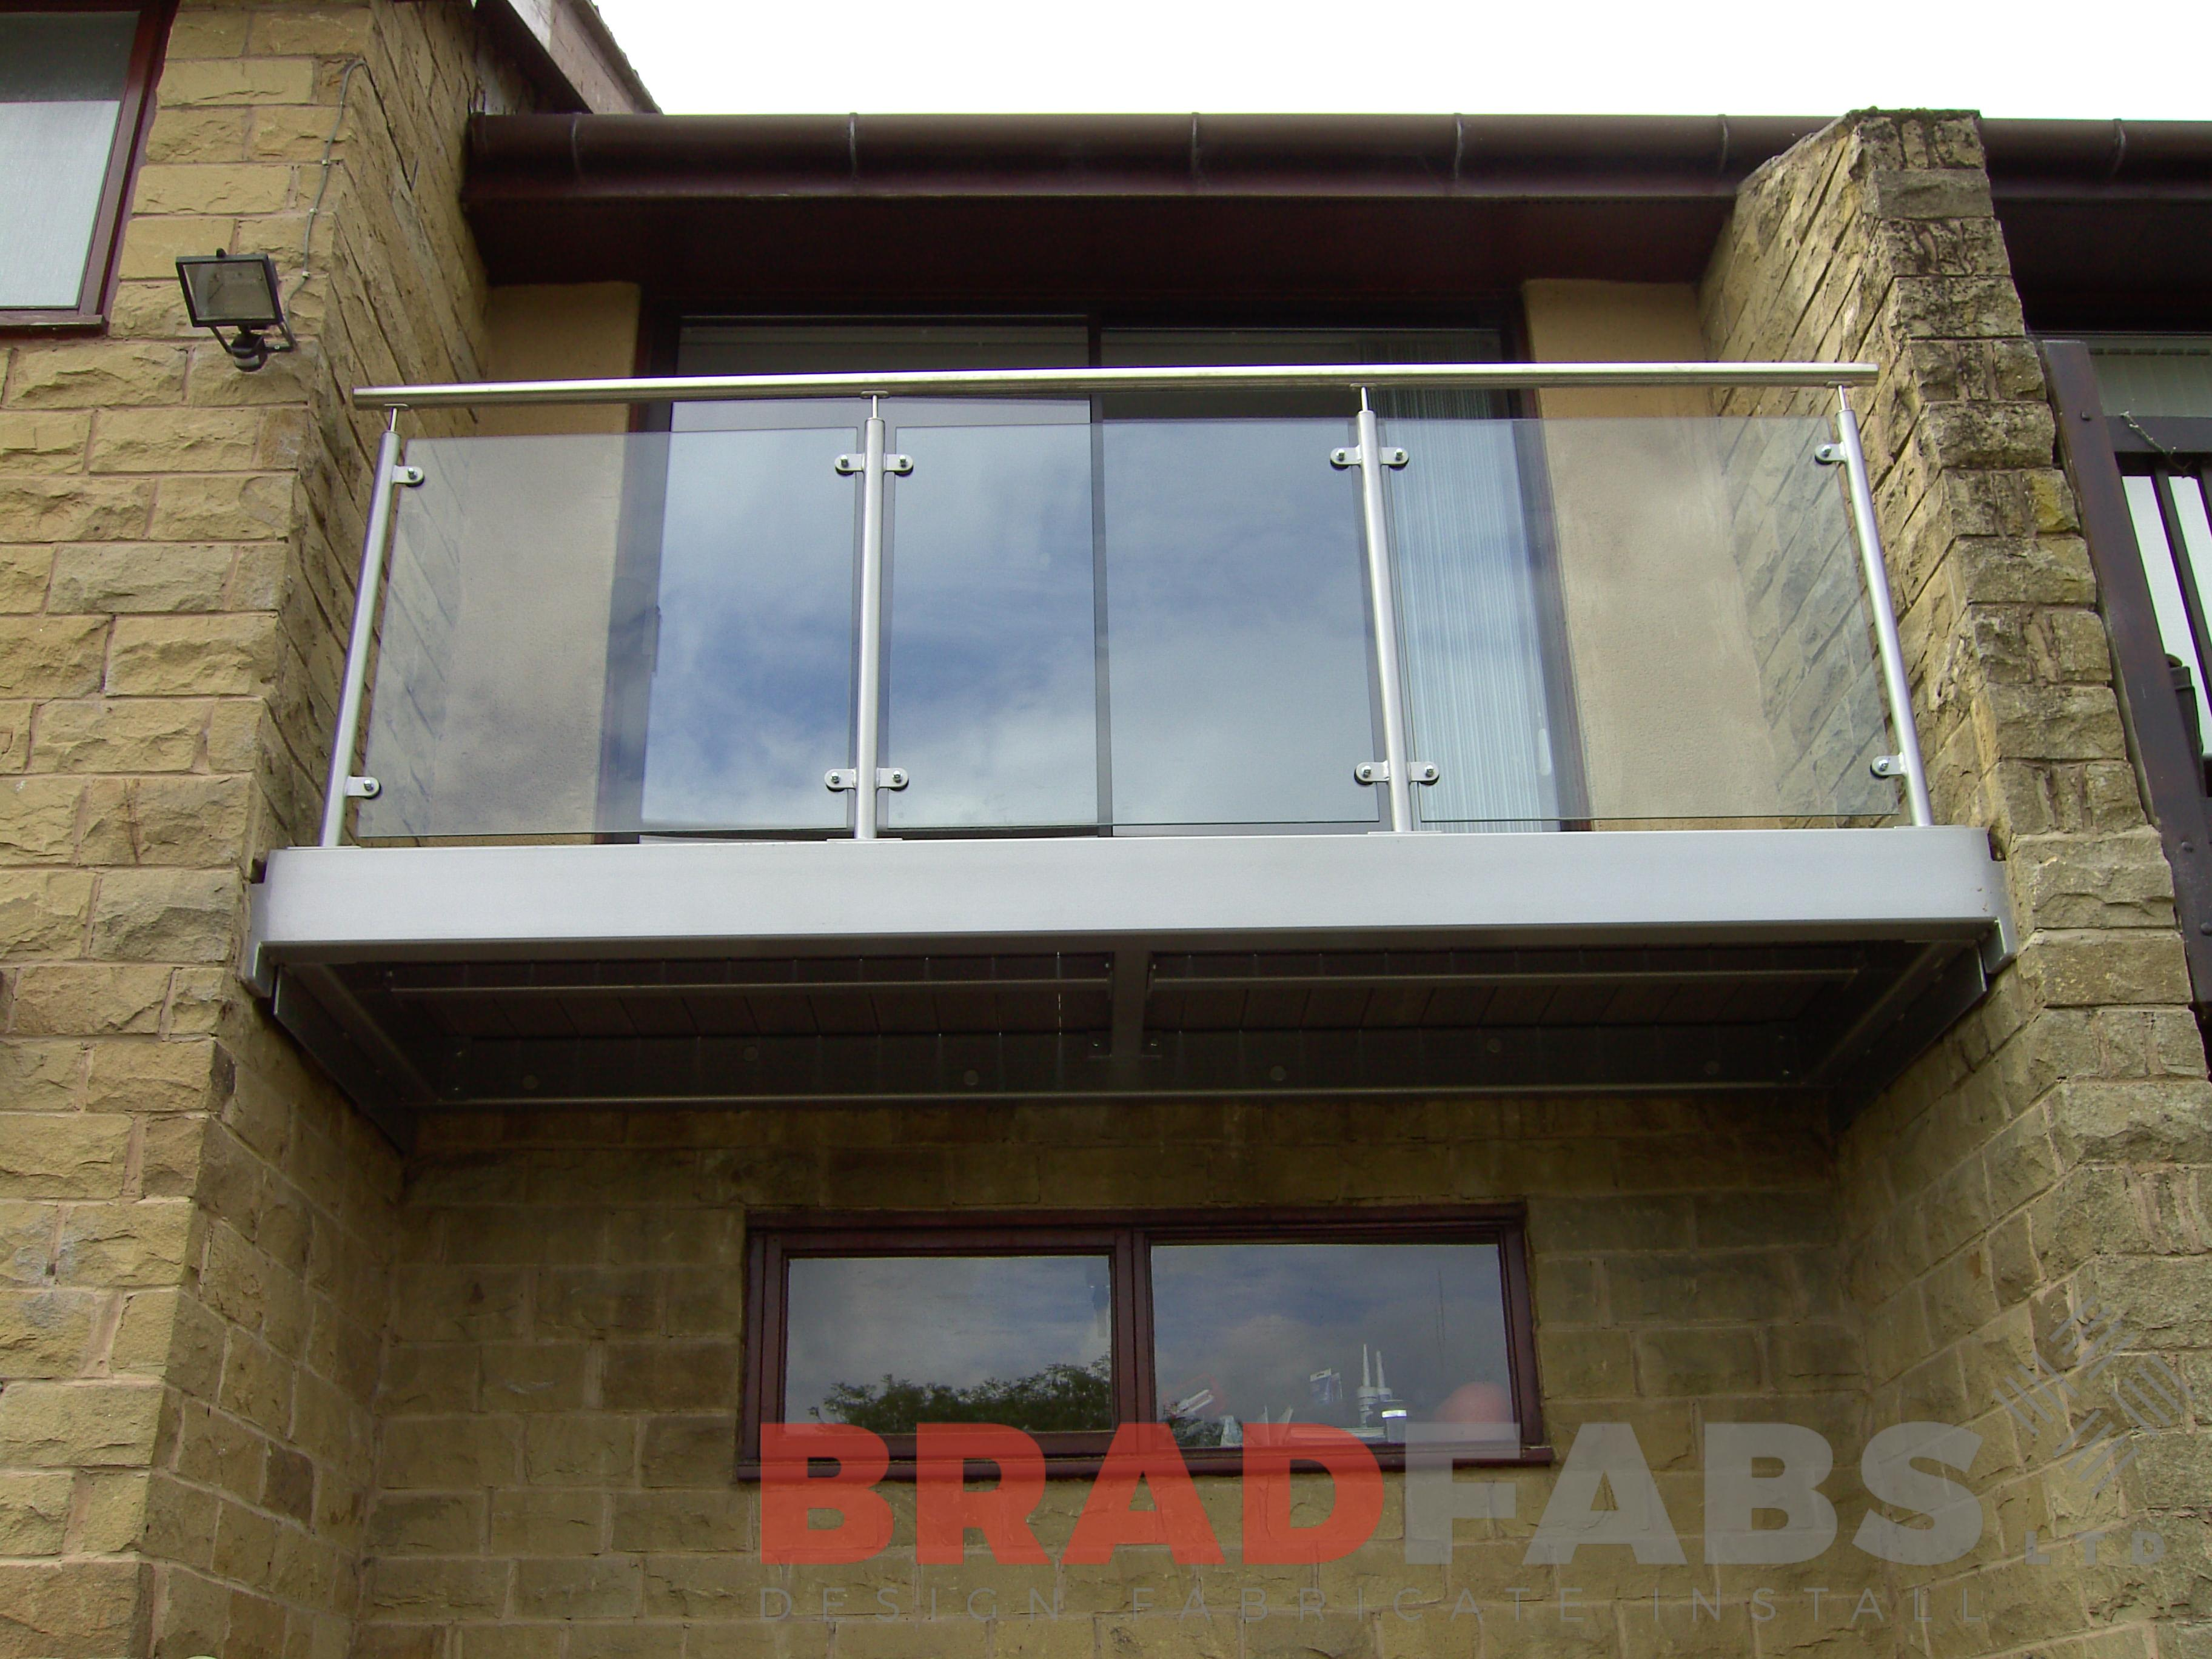 Small balcony outside a juliette window, manufactured in mild steel and galvanised. With glass infill panels and stainless steel balustrade complete with composite decked flooring by Bradfabs